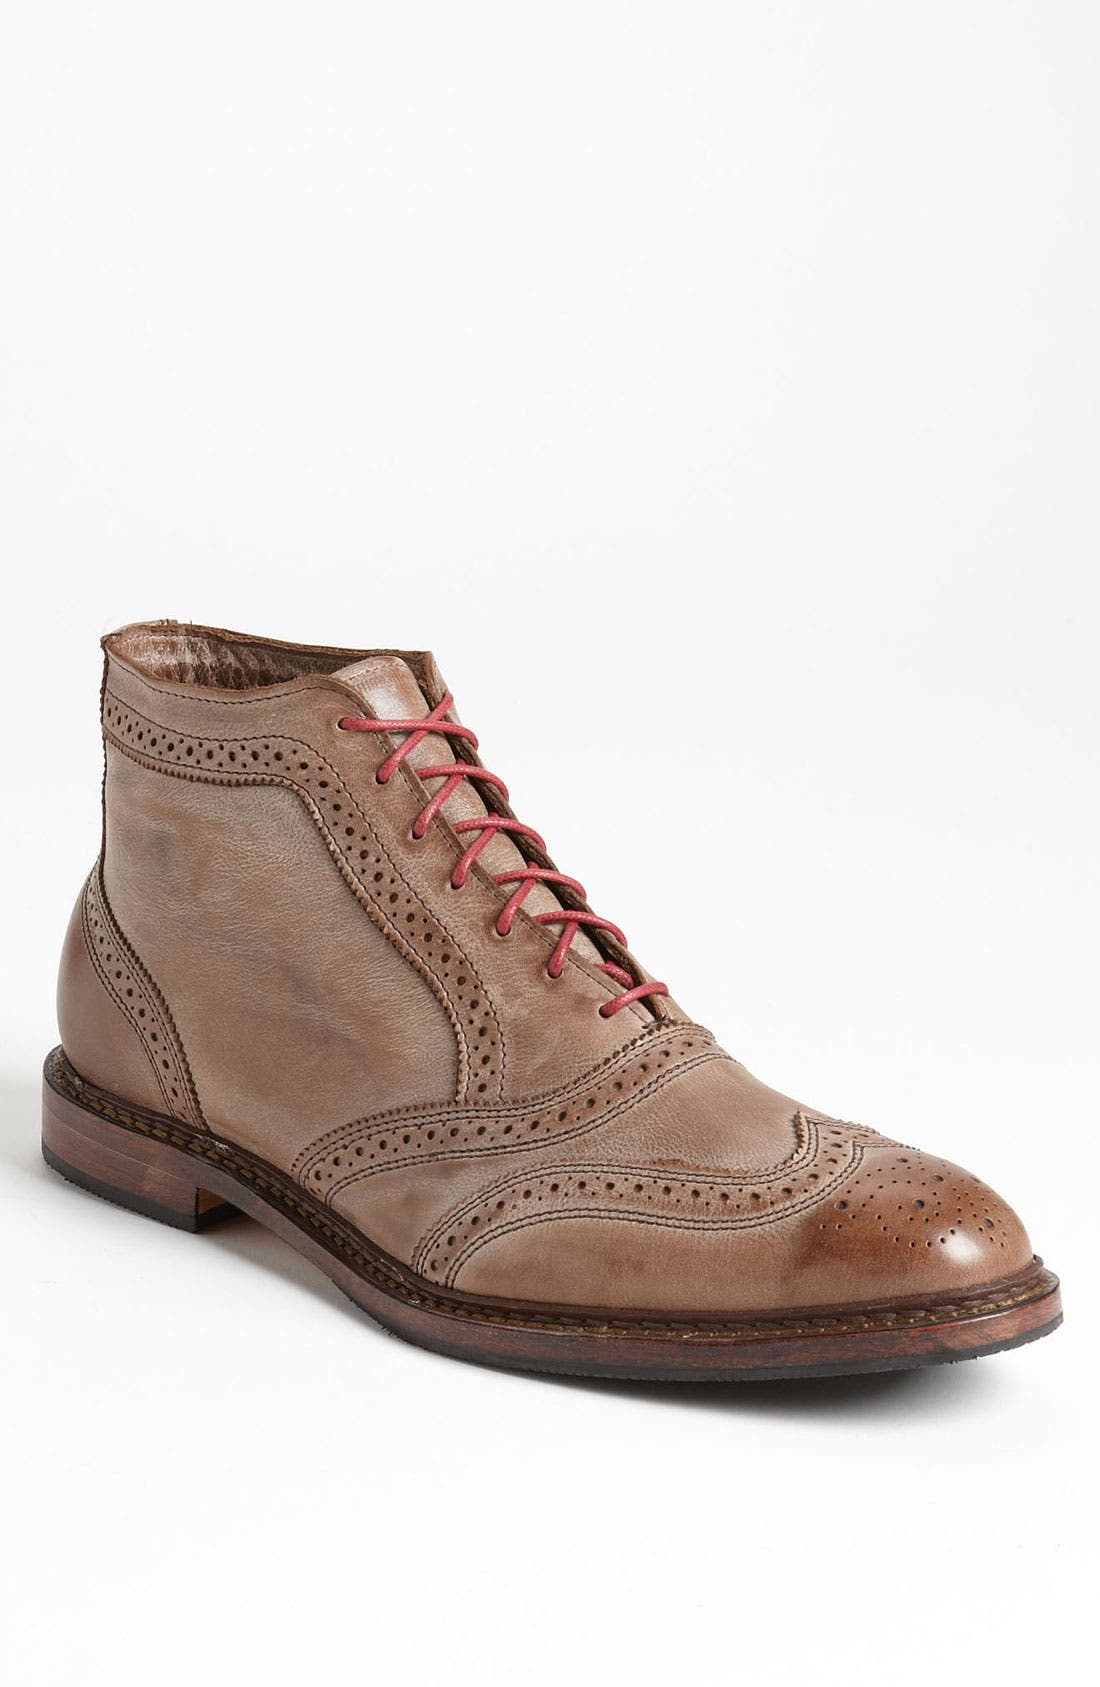 ALLEN EDMONDS,                             'Cronmok' Wingtip Boot,                             Main thumbnail 1, color,                             200